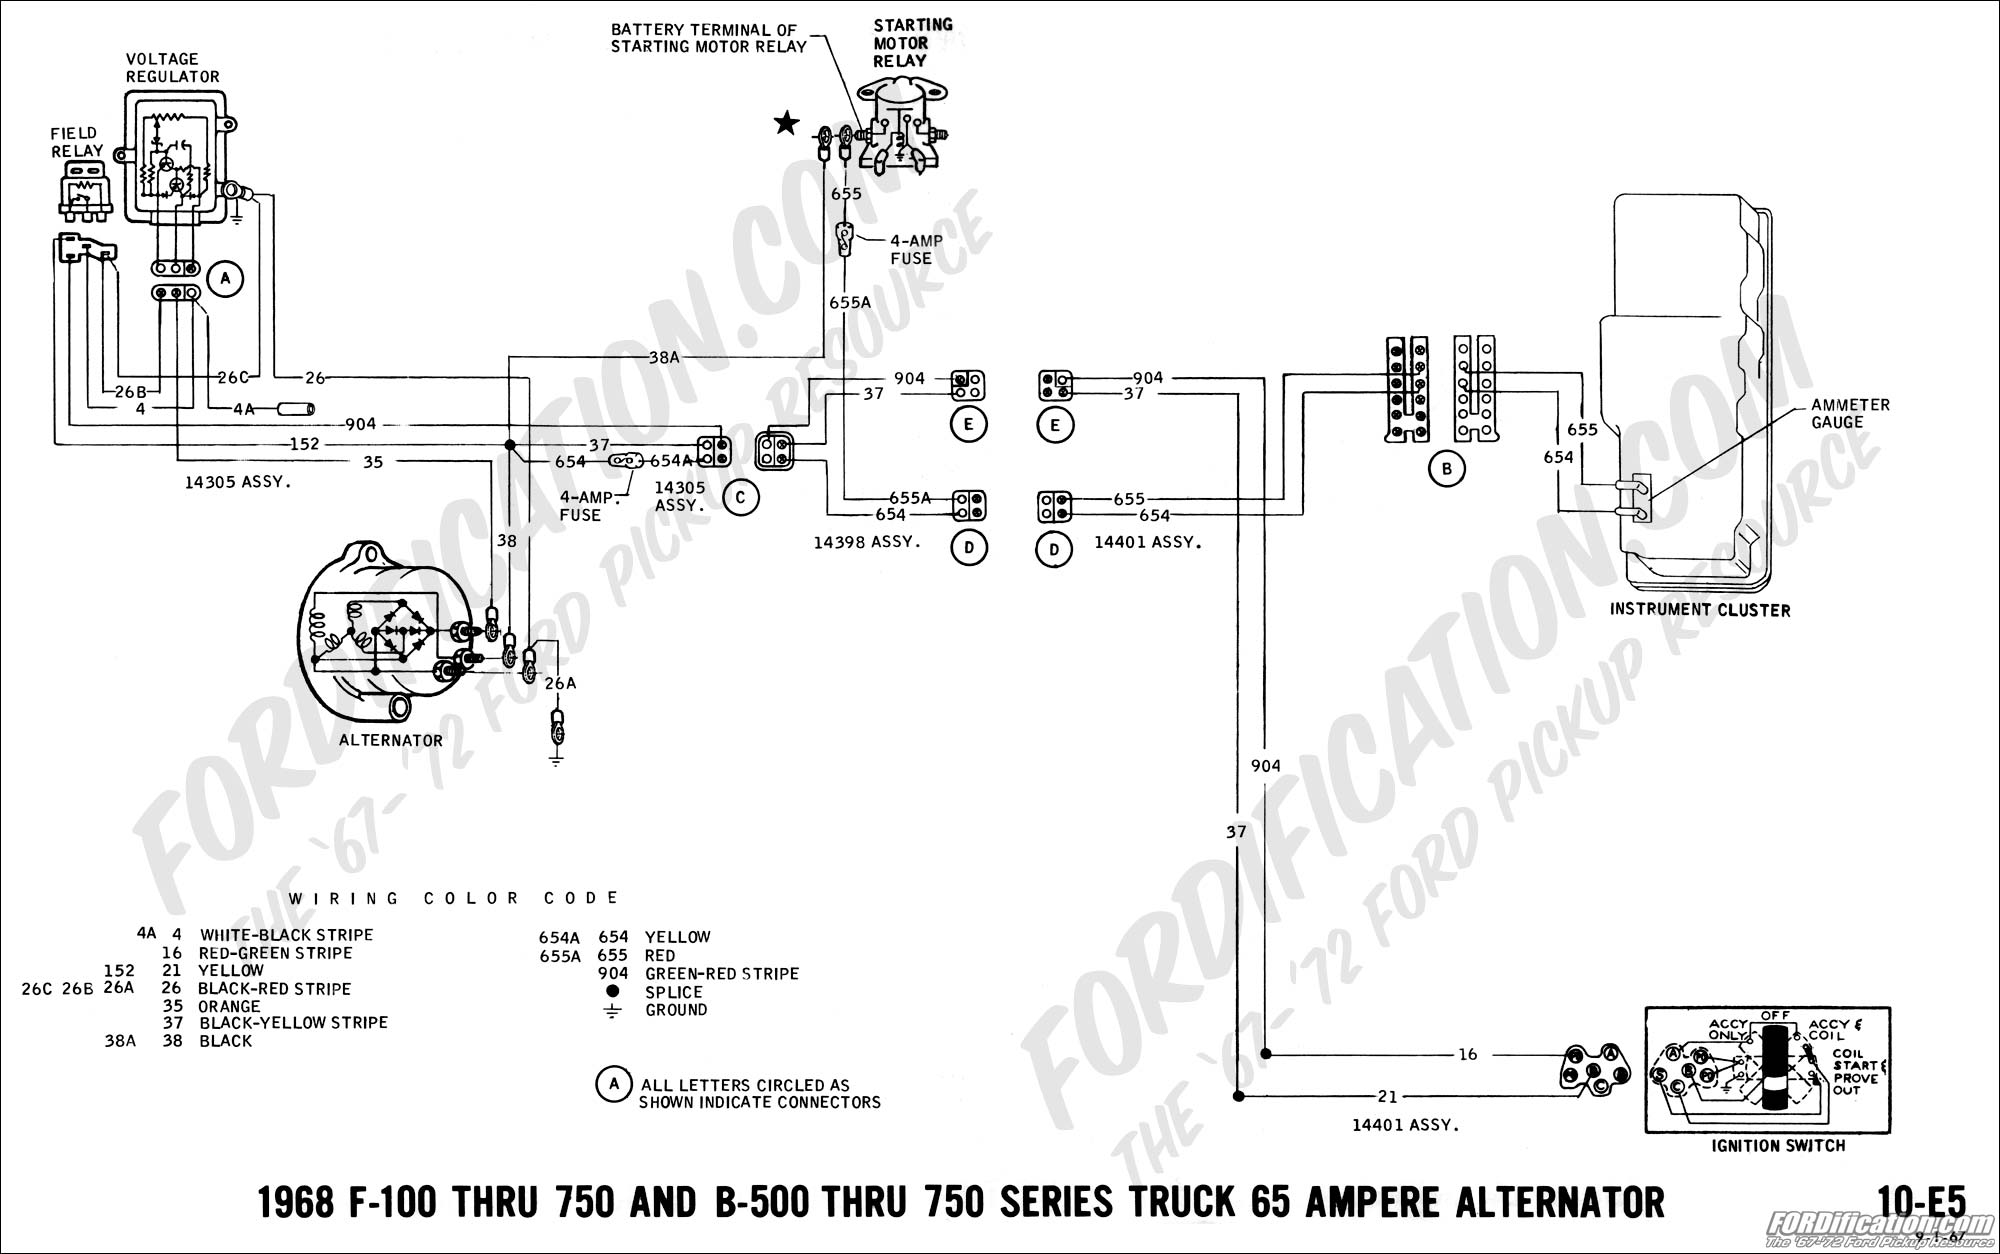 68 07 ford truck technical drawings and schematics section h wiring 1971 ford f250 wiring diagram at mr168.co